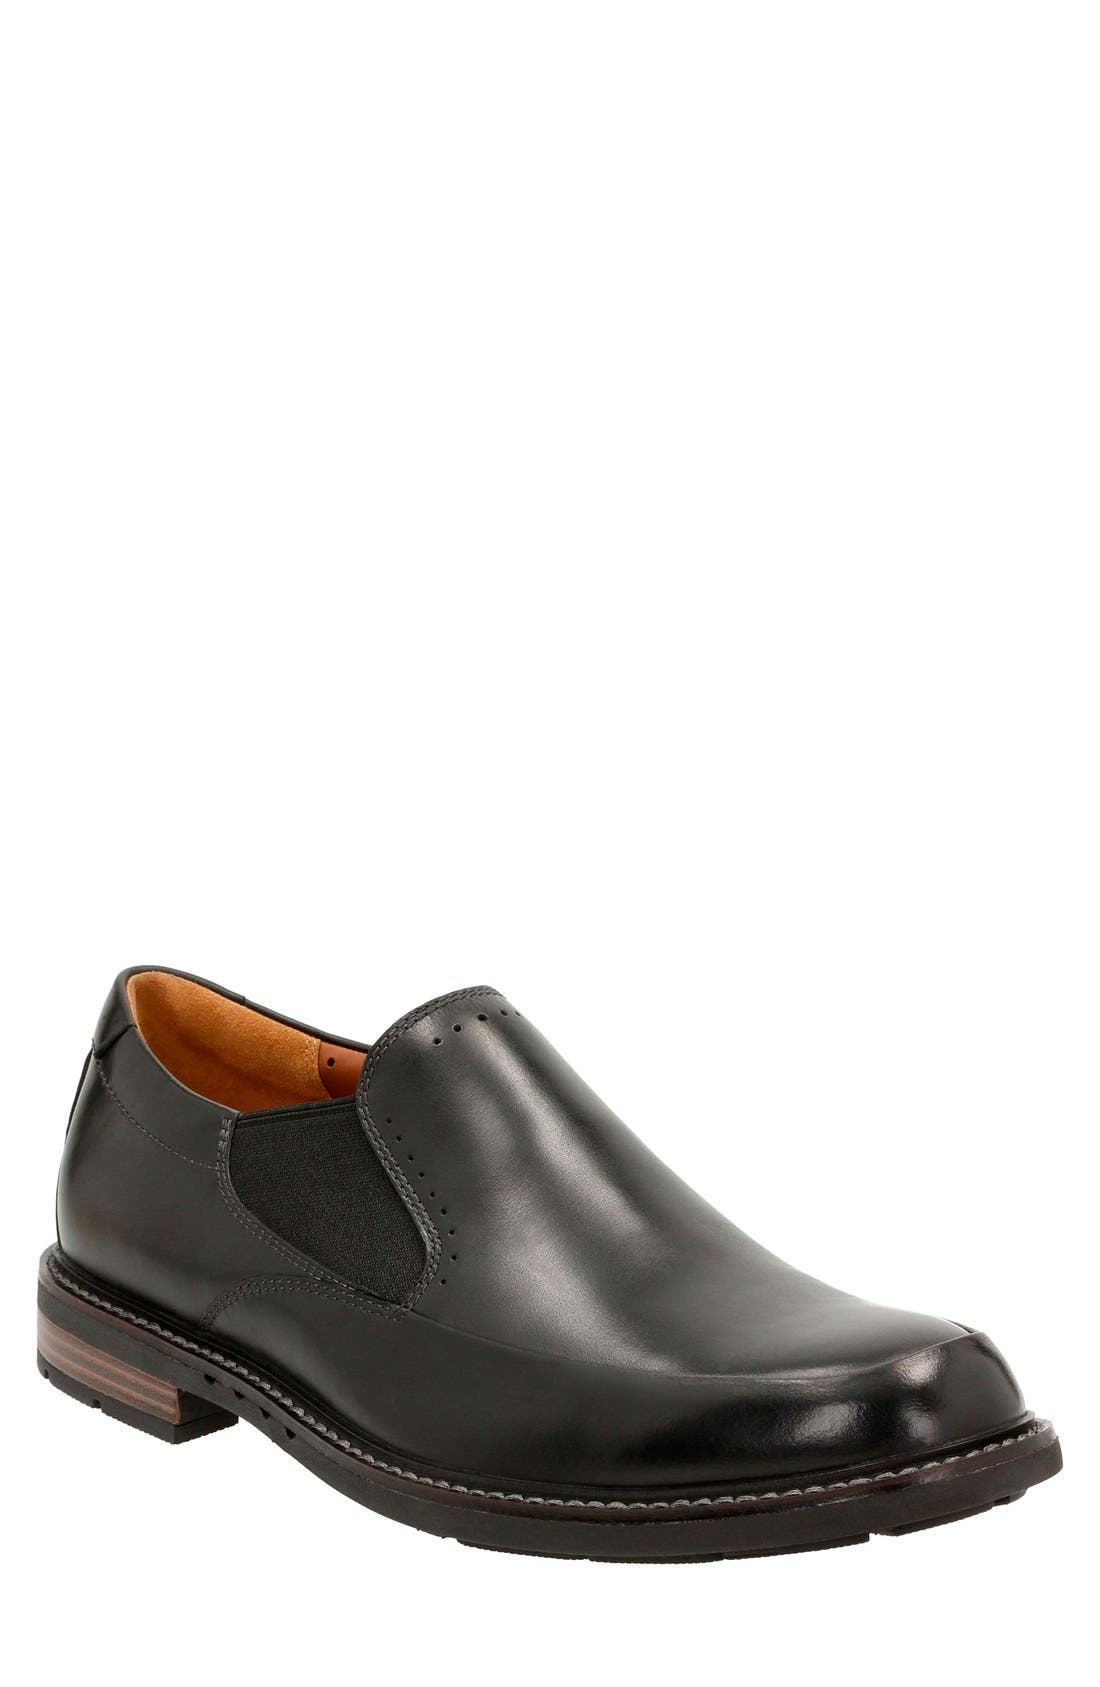 'Unstructured - Elott' Slip-On,                             Main thumbnail 1, color,                             Black Leather